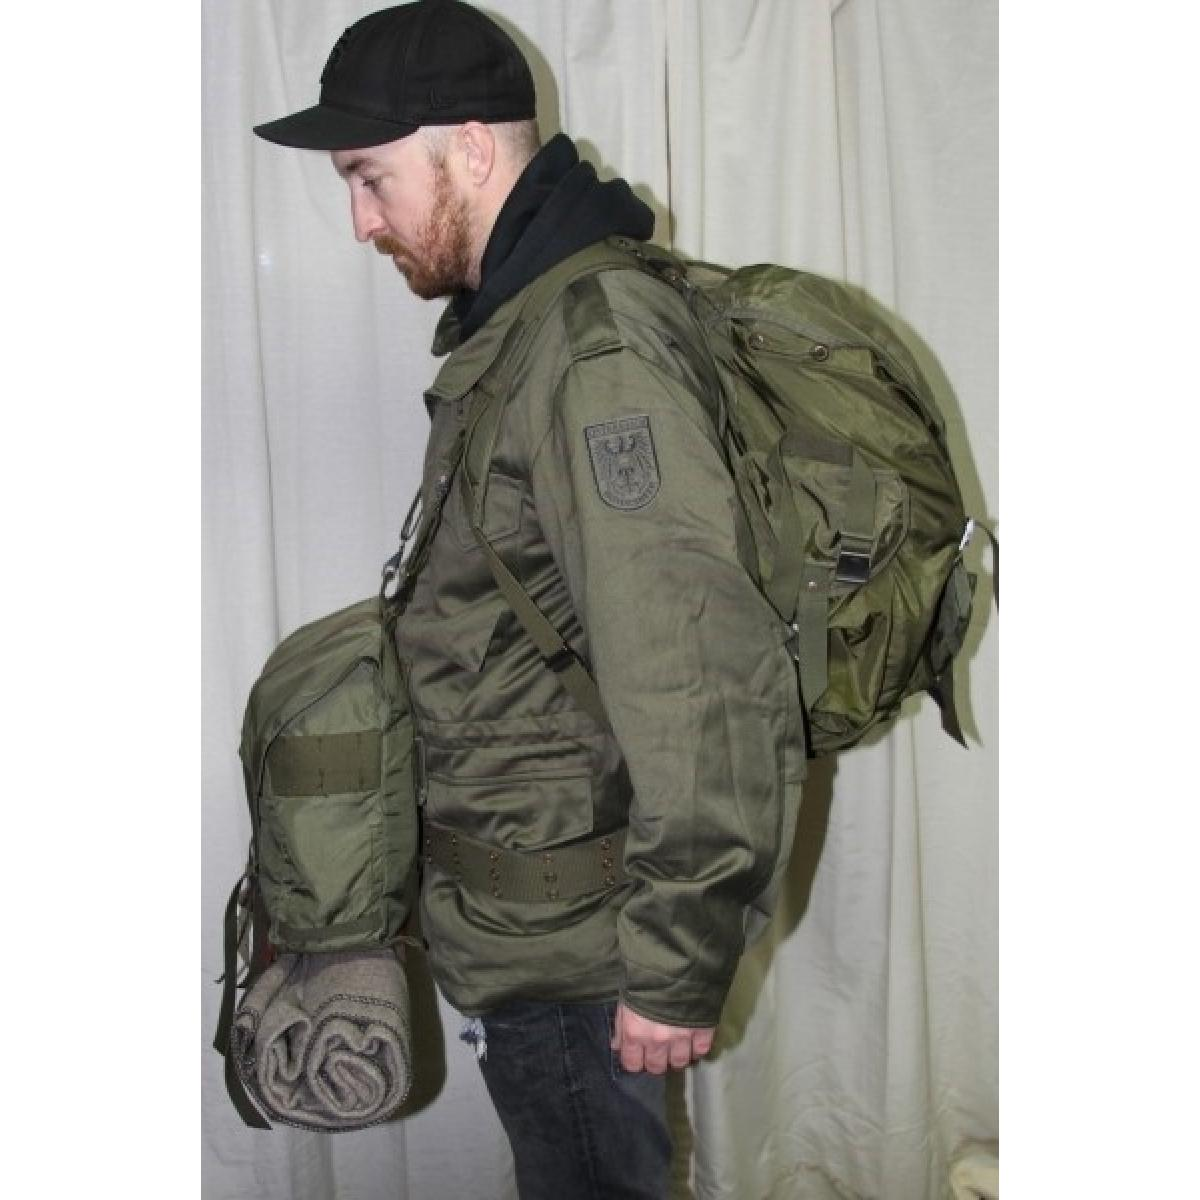 2037-austrian-military-4-pc-backpack-pic2-1200x1200